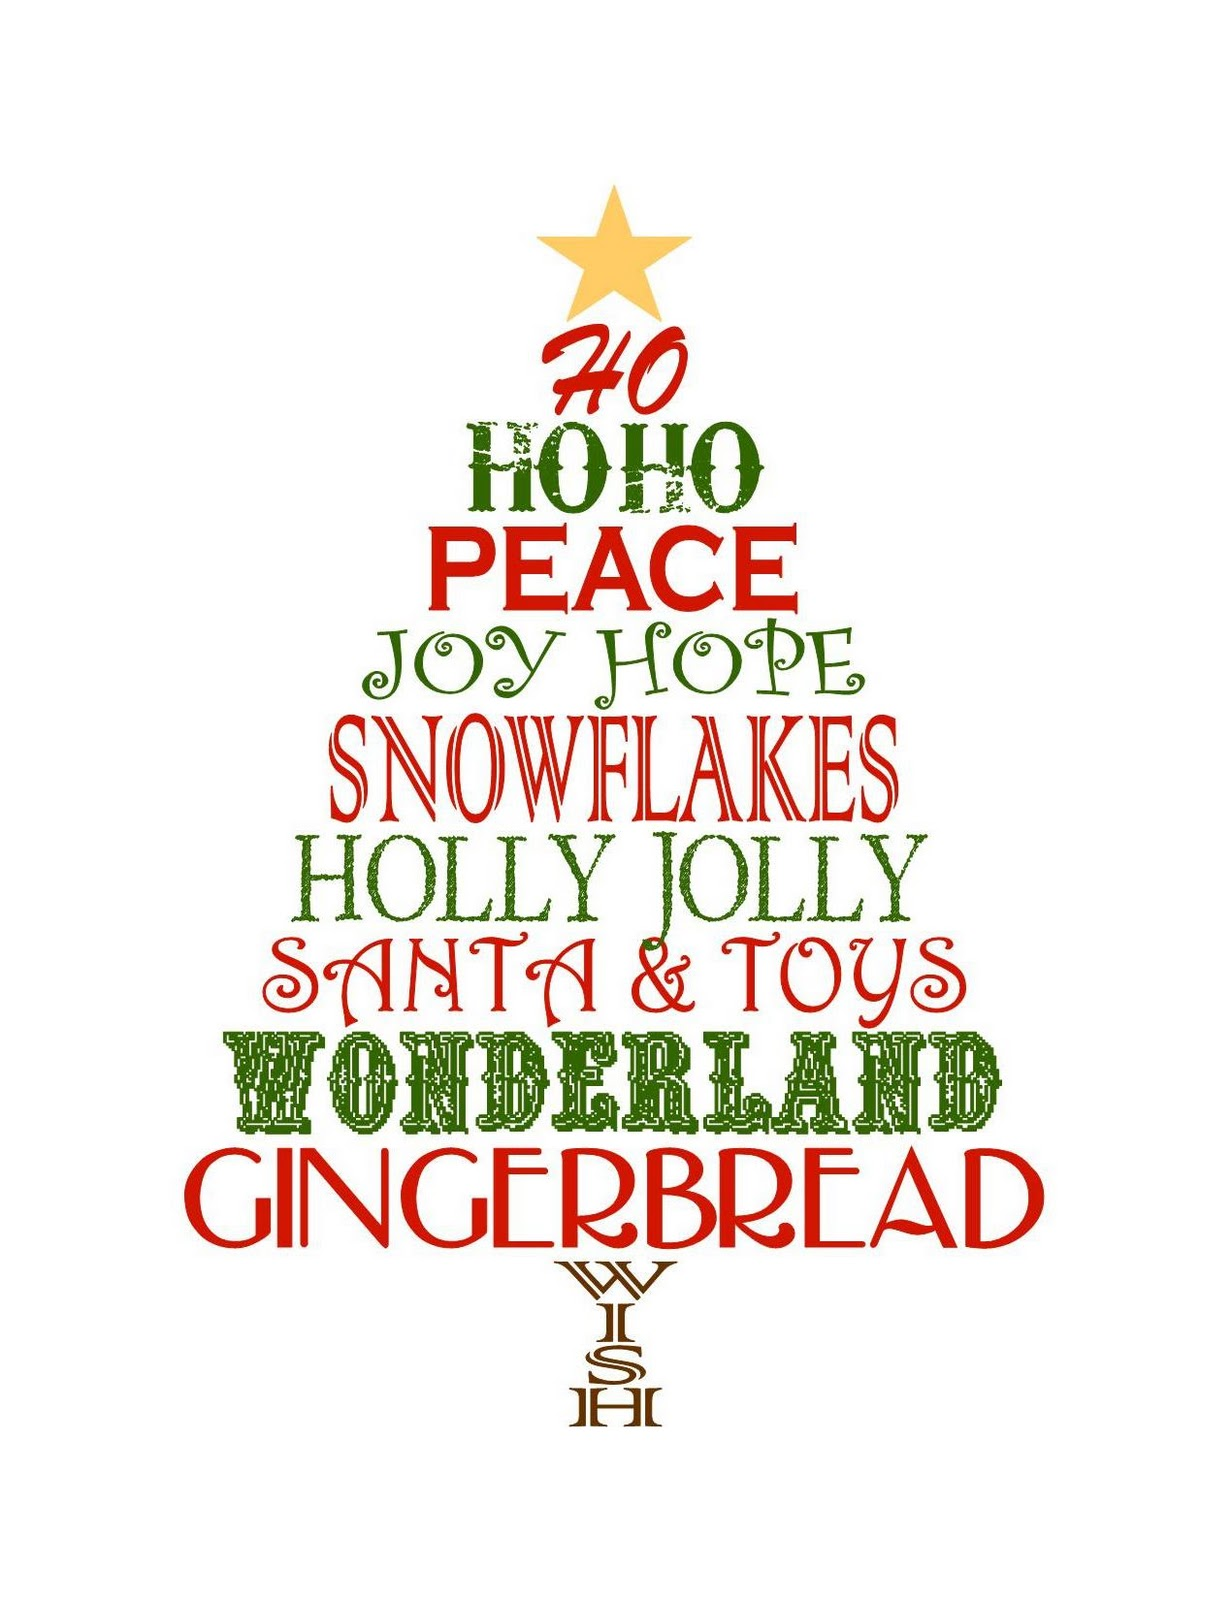 photo regarding Free Printable Christmas Tree identify 20 Phrases Xmas Trees No cost Graphics Pics - Xmas